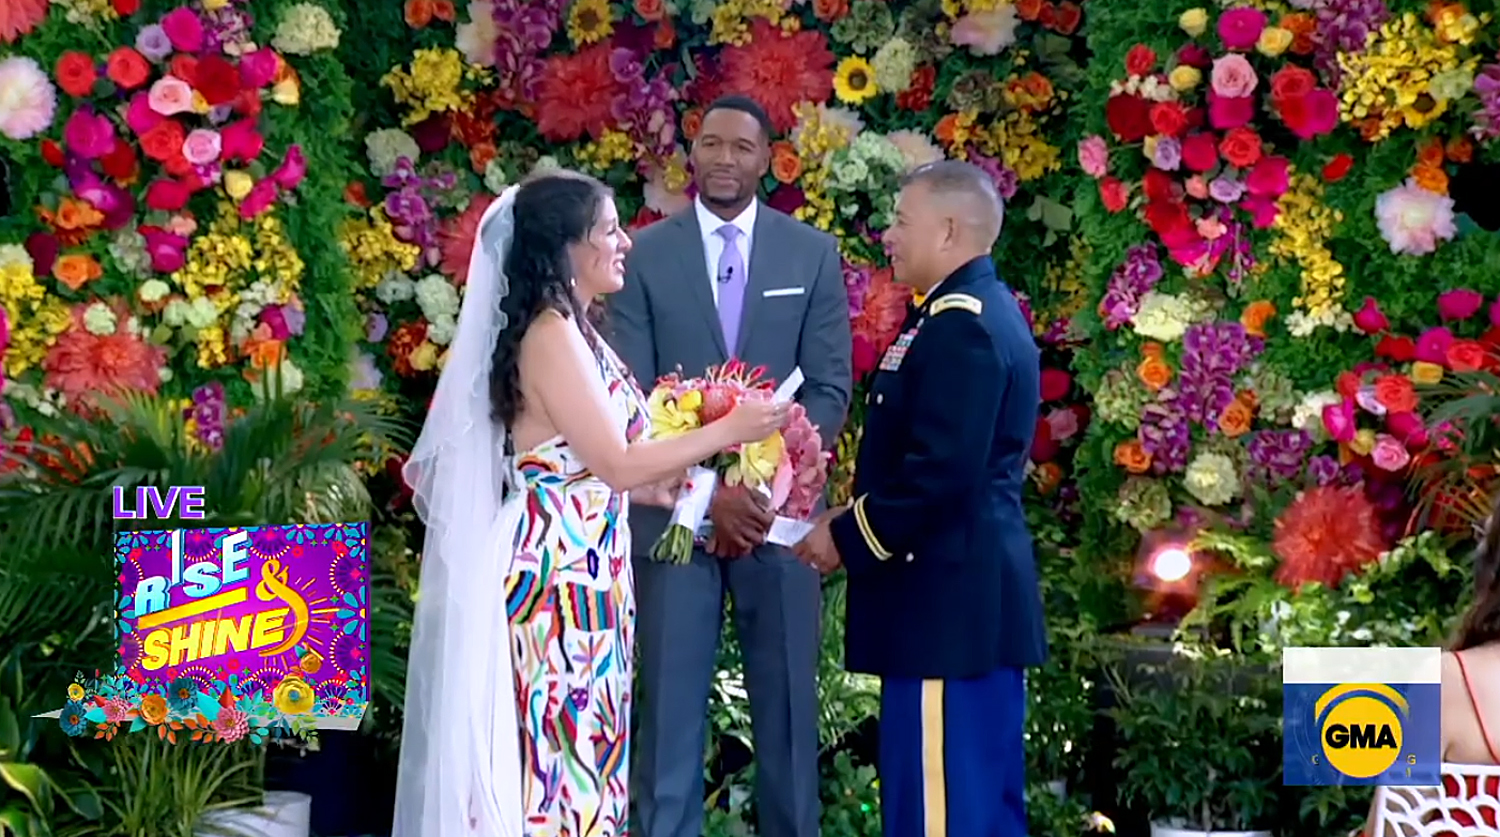 Jose Perez and Heather Hathaway Miranda finally get to have the wedding of their dreams